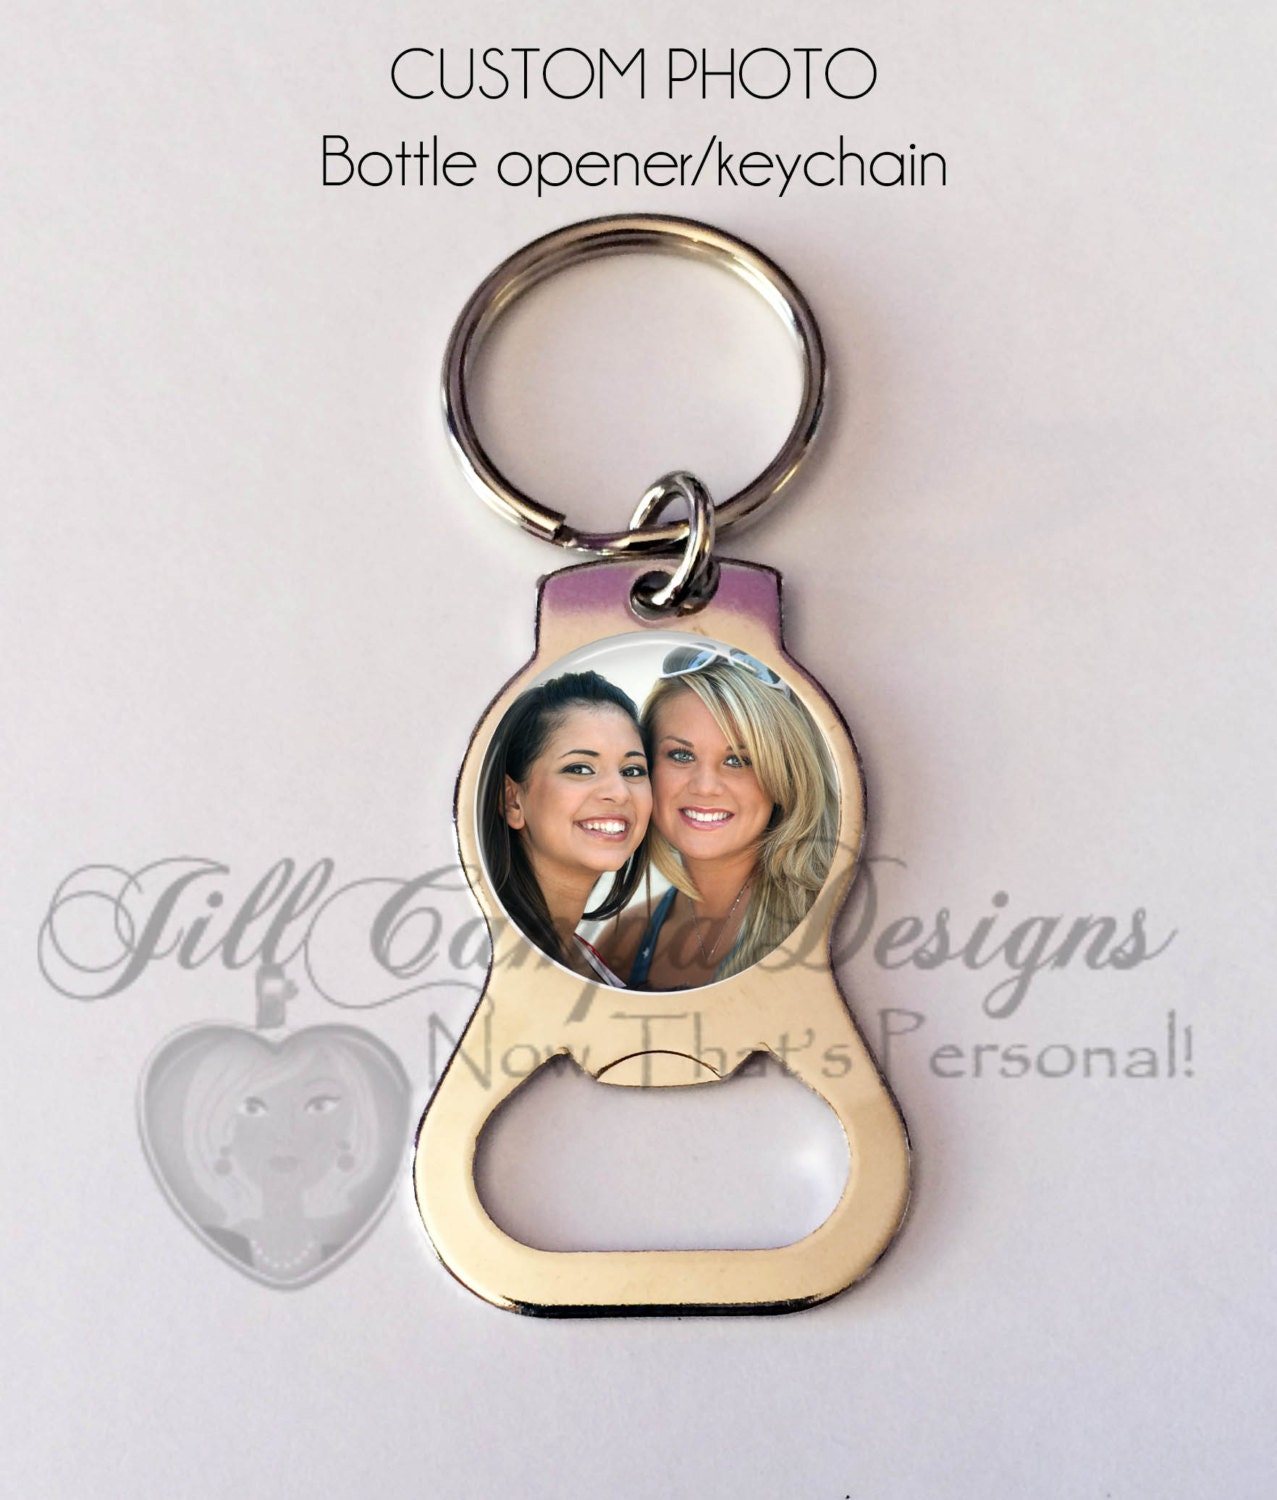 personalize bottle opener keychain photo key chain photo. Black Bedroom Furniture Sets. Home Design Ideas